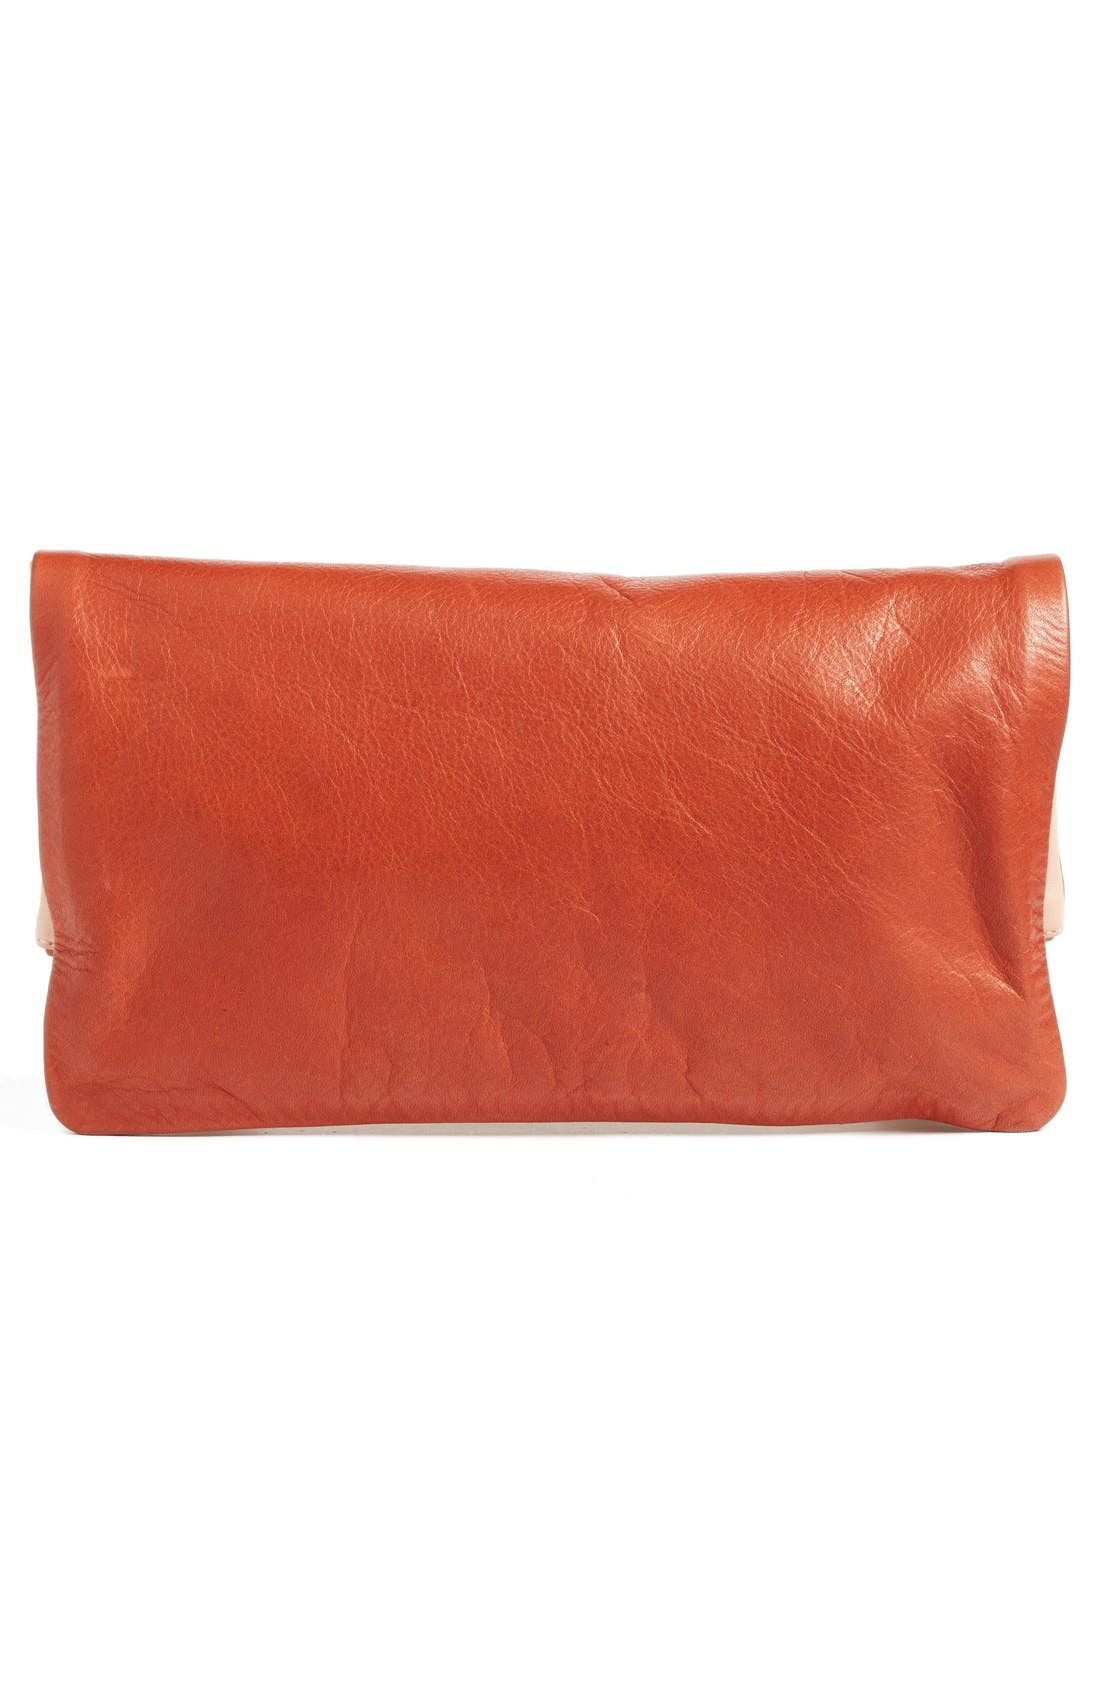 Alternate Image 3  - Clare V. Colorblock Leather Foldover Clutch